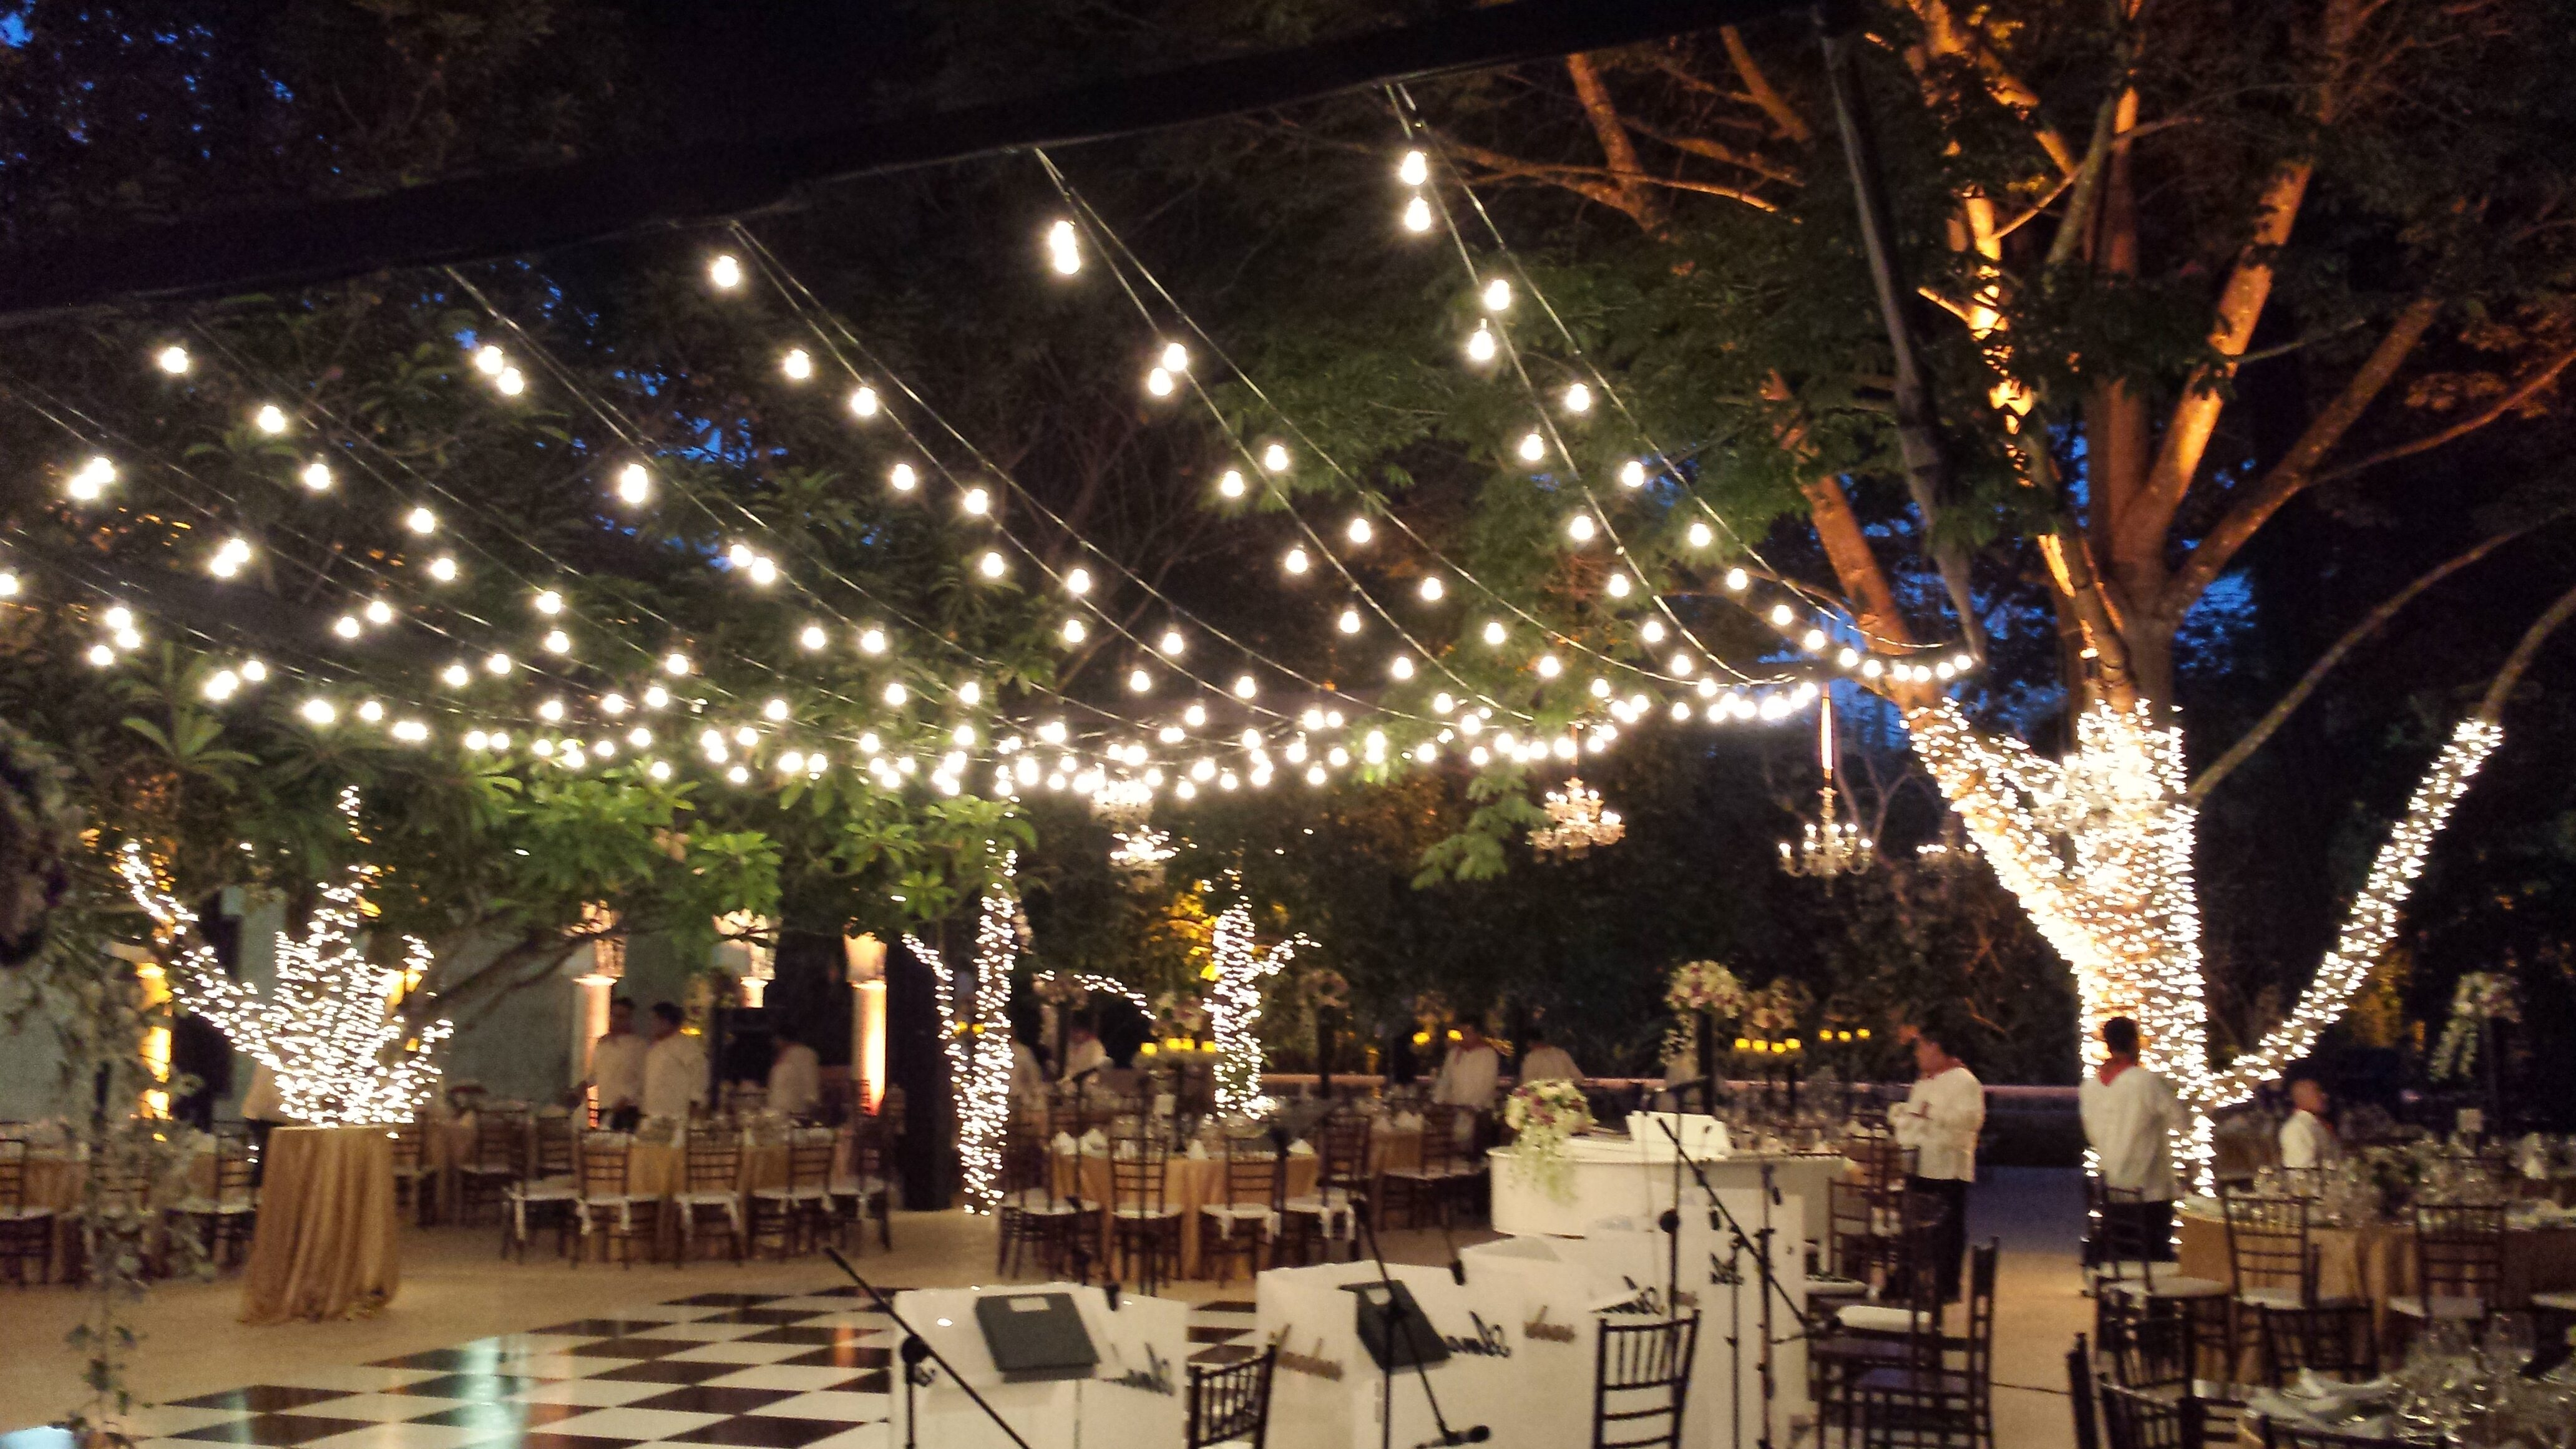 Hanging Patio String Lights: A Pattern of Perfection ... on Backyard String Light Designs id=62926